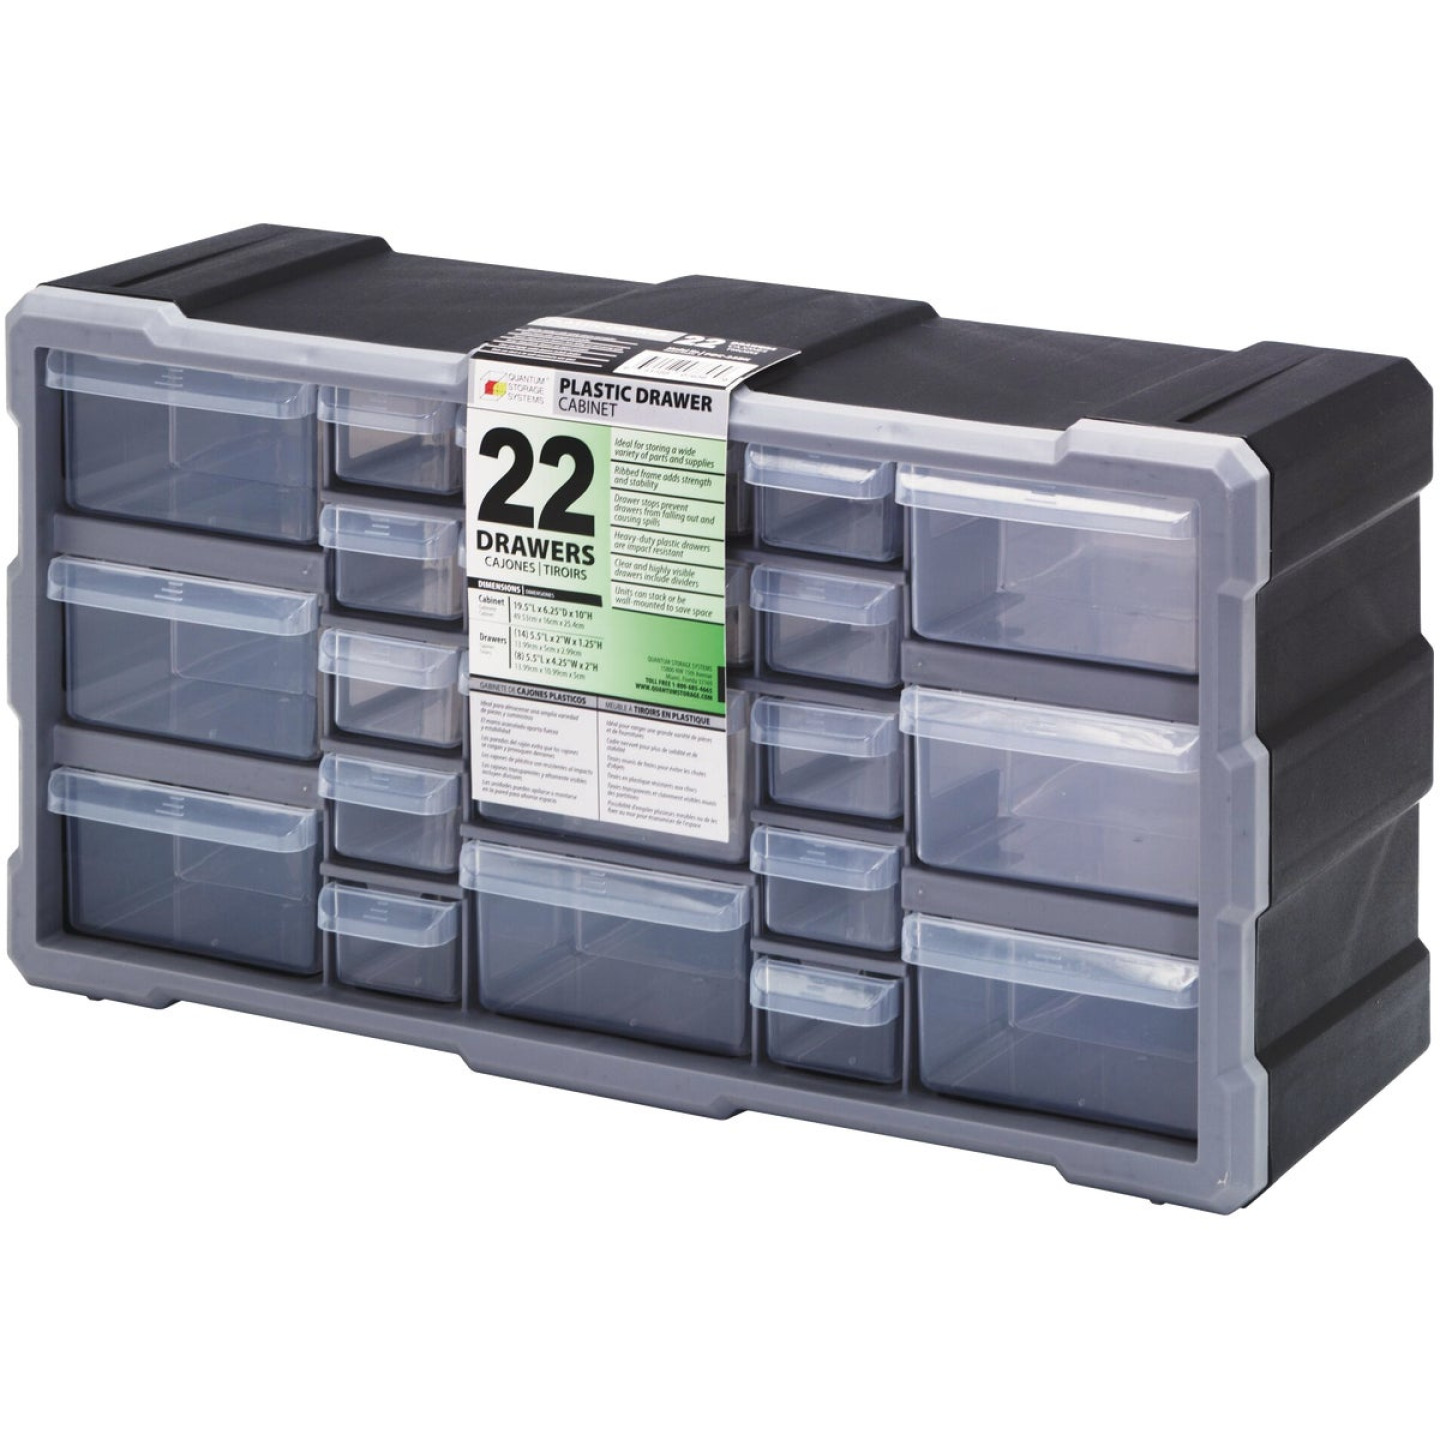 Quantum Storage 19.50 In. W x 10.25 In. H x 6.25 In. L Small Parts Organizer with 22 Drawers Image 1